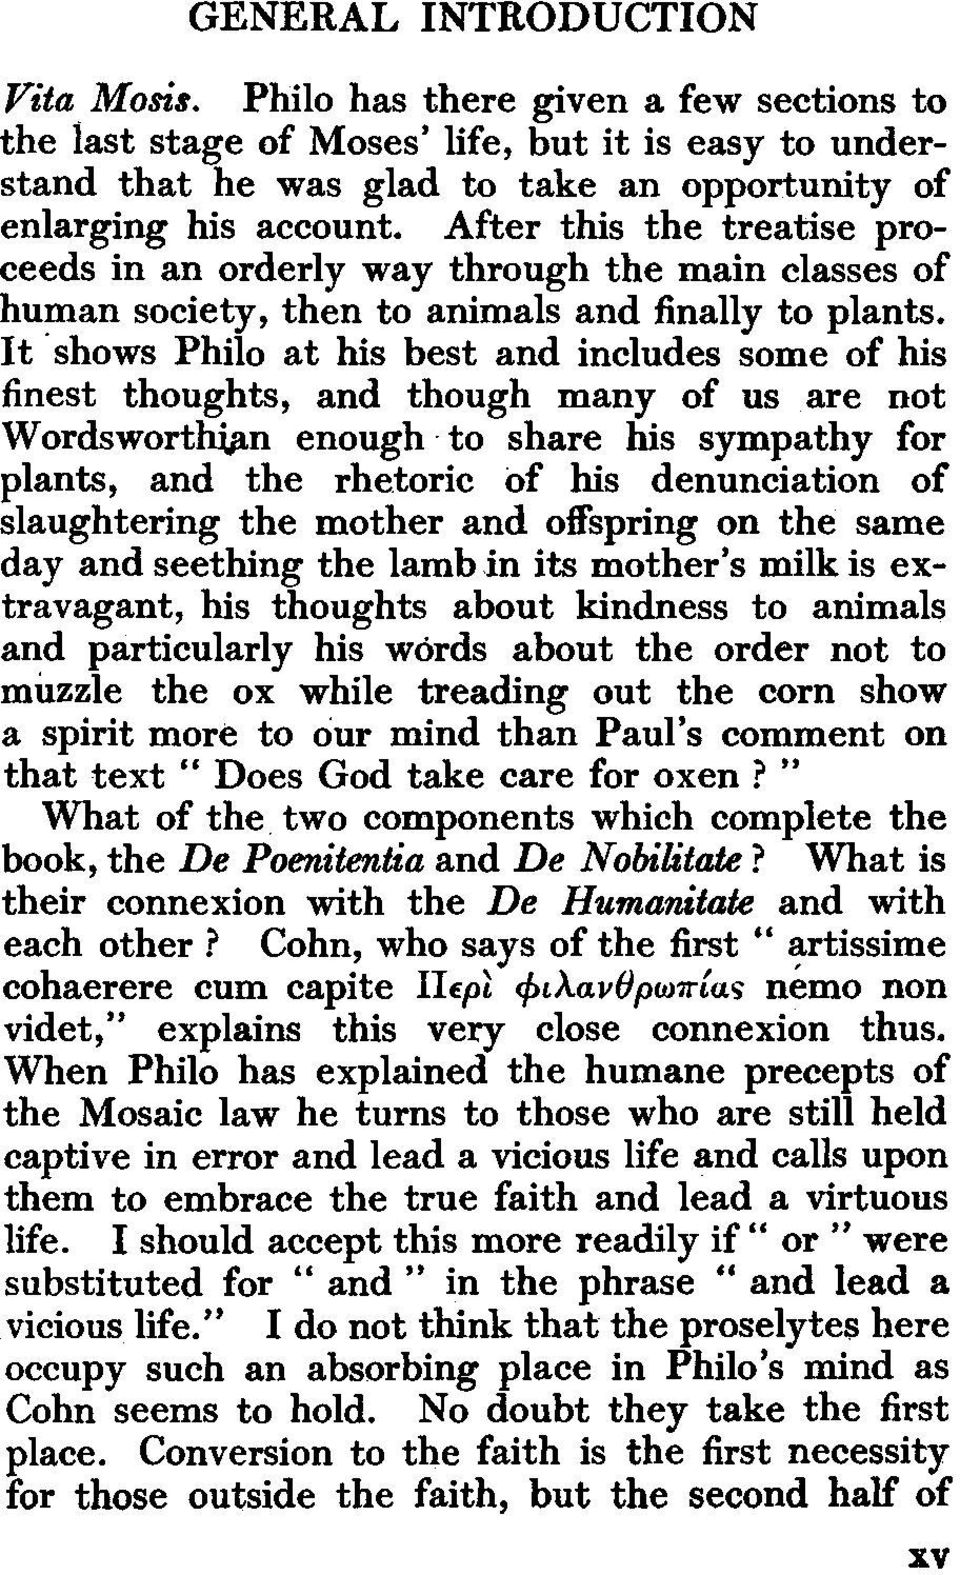 It shows Philo at his best and includes some of his finest thoughts, and though many of us are not Wordswortm>n enough to share his sympathy for plants, and the rhetoric of his denunciation of